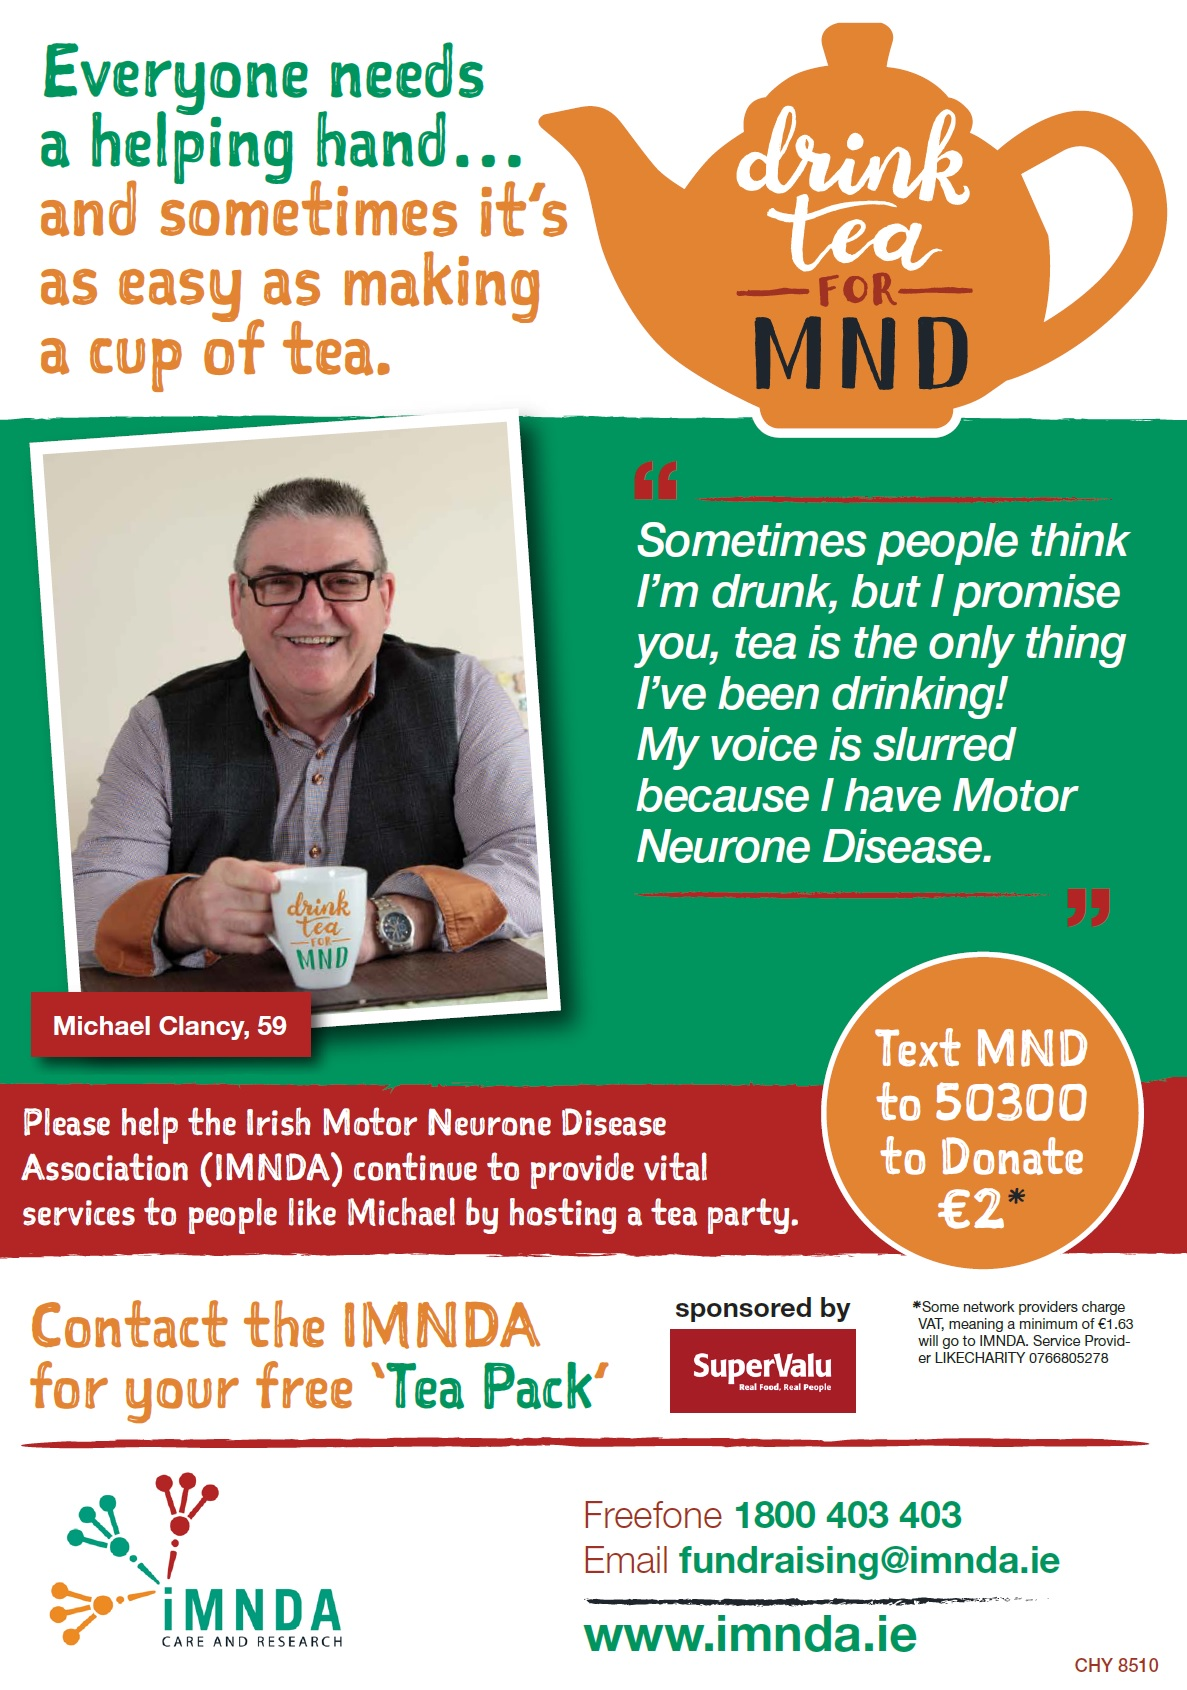 National mnd awareness campaign 2017 imnda for Motor neurone disease support